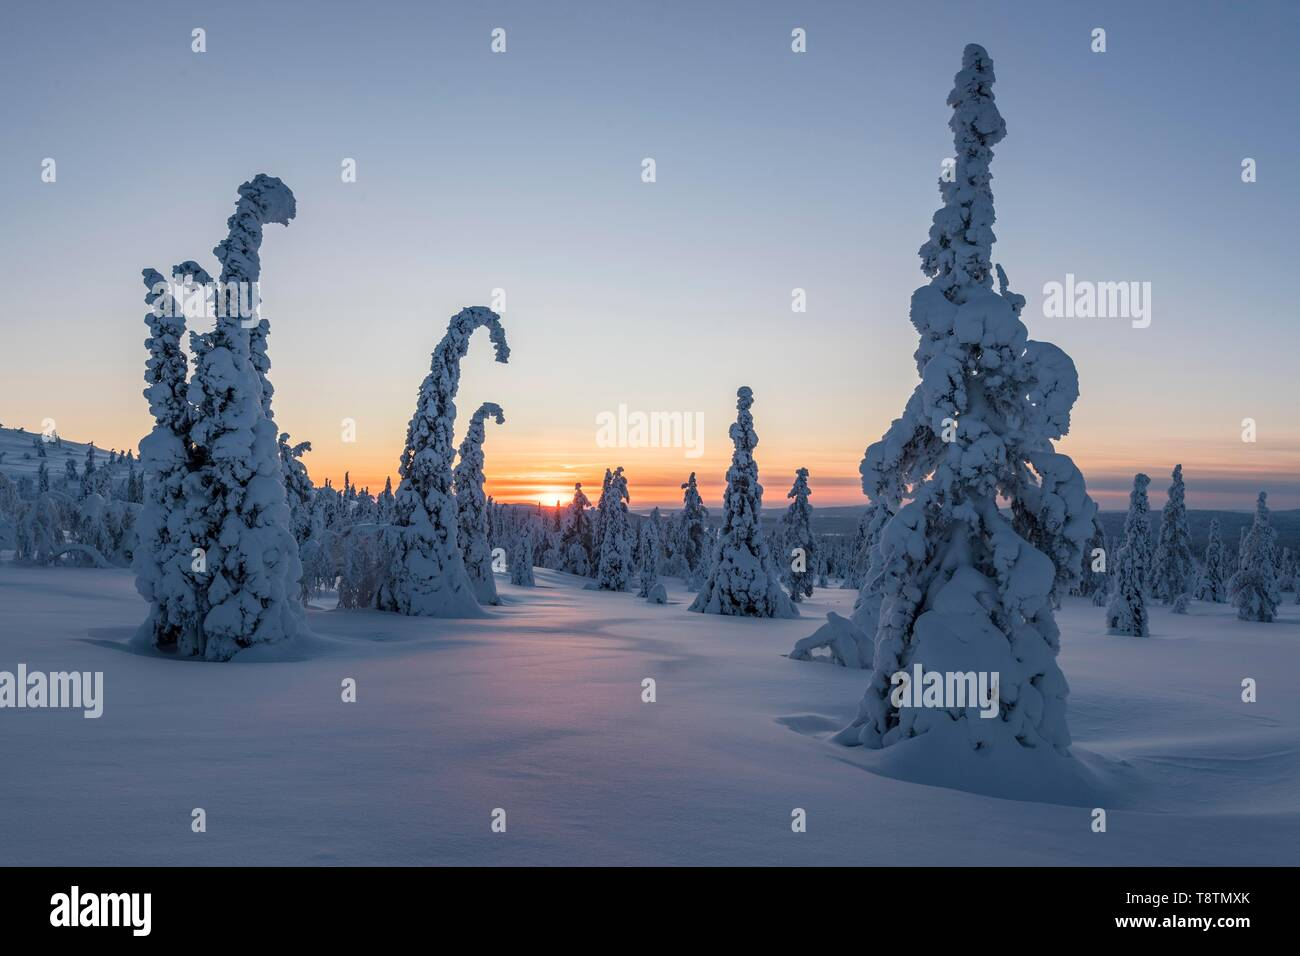 Snow-covered spruces, winter landscape at sunset, Riisitunturi National Park, Posio, Lapland, Finland - Stock Image